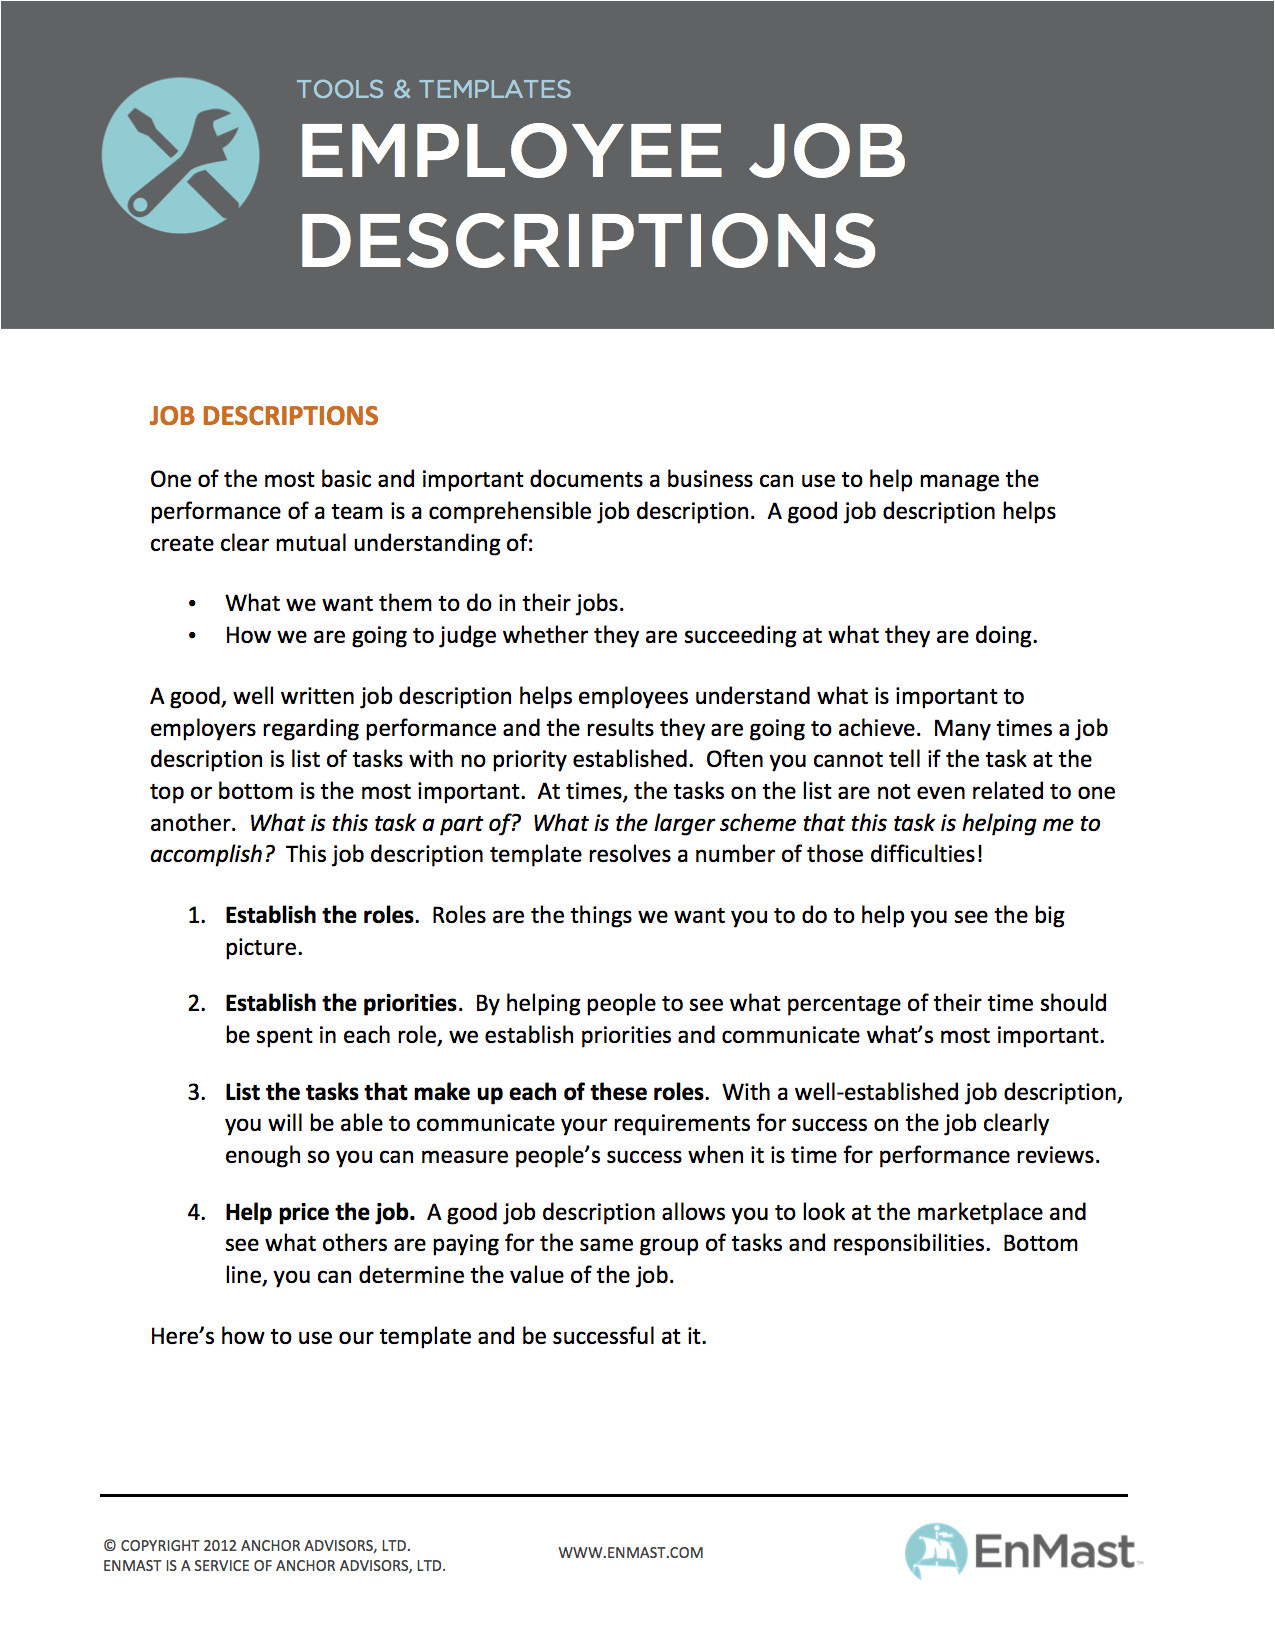 Creating Job Descriptions Template Employee Job Descriptions tool and Template